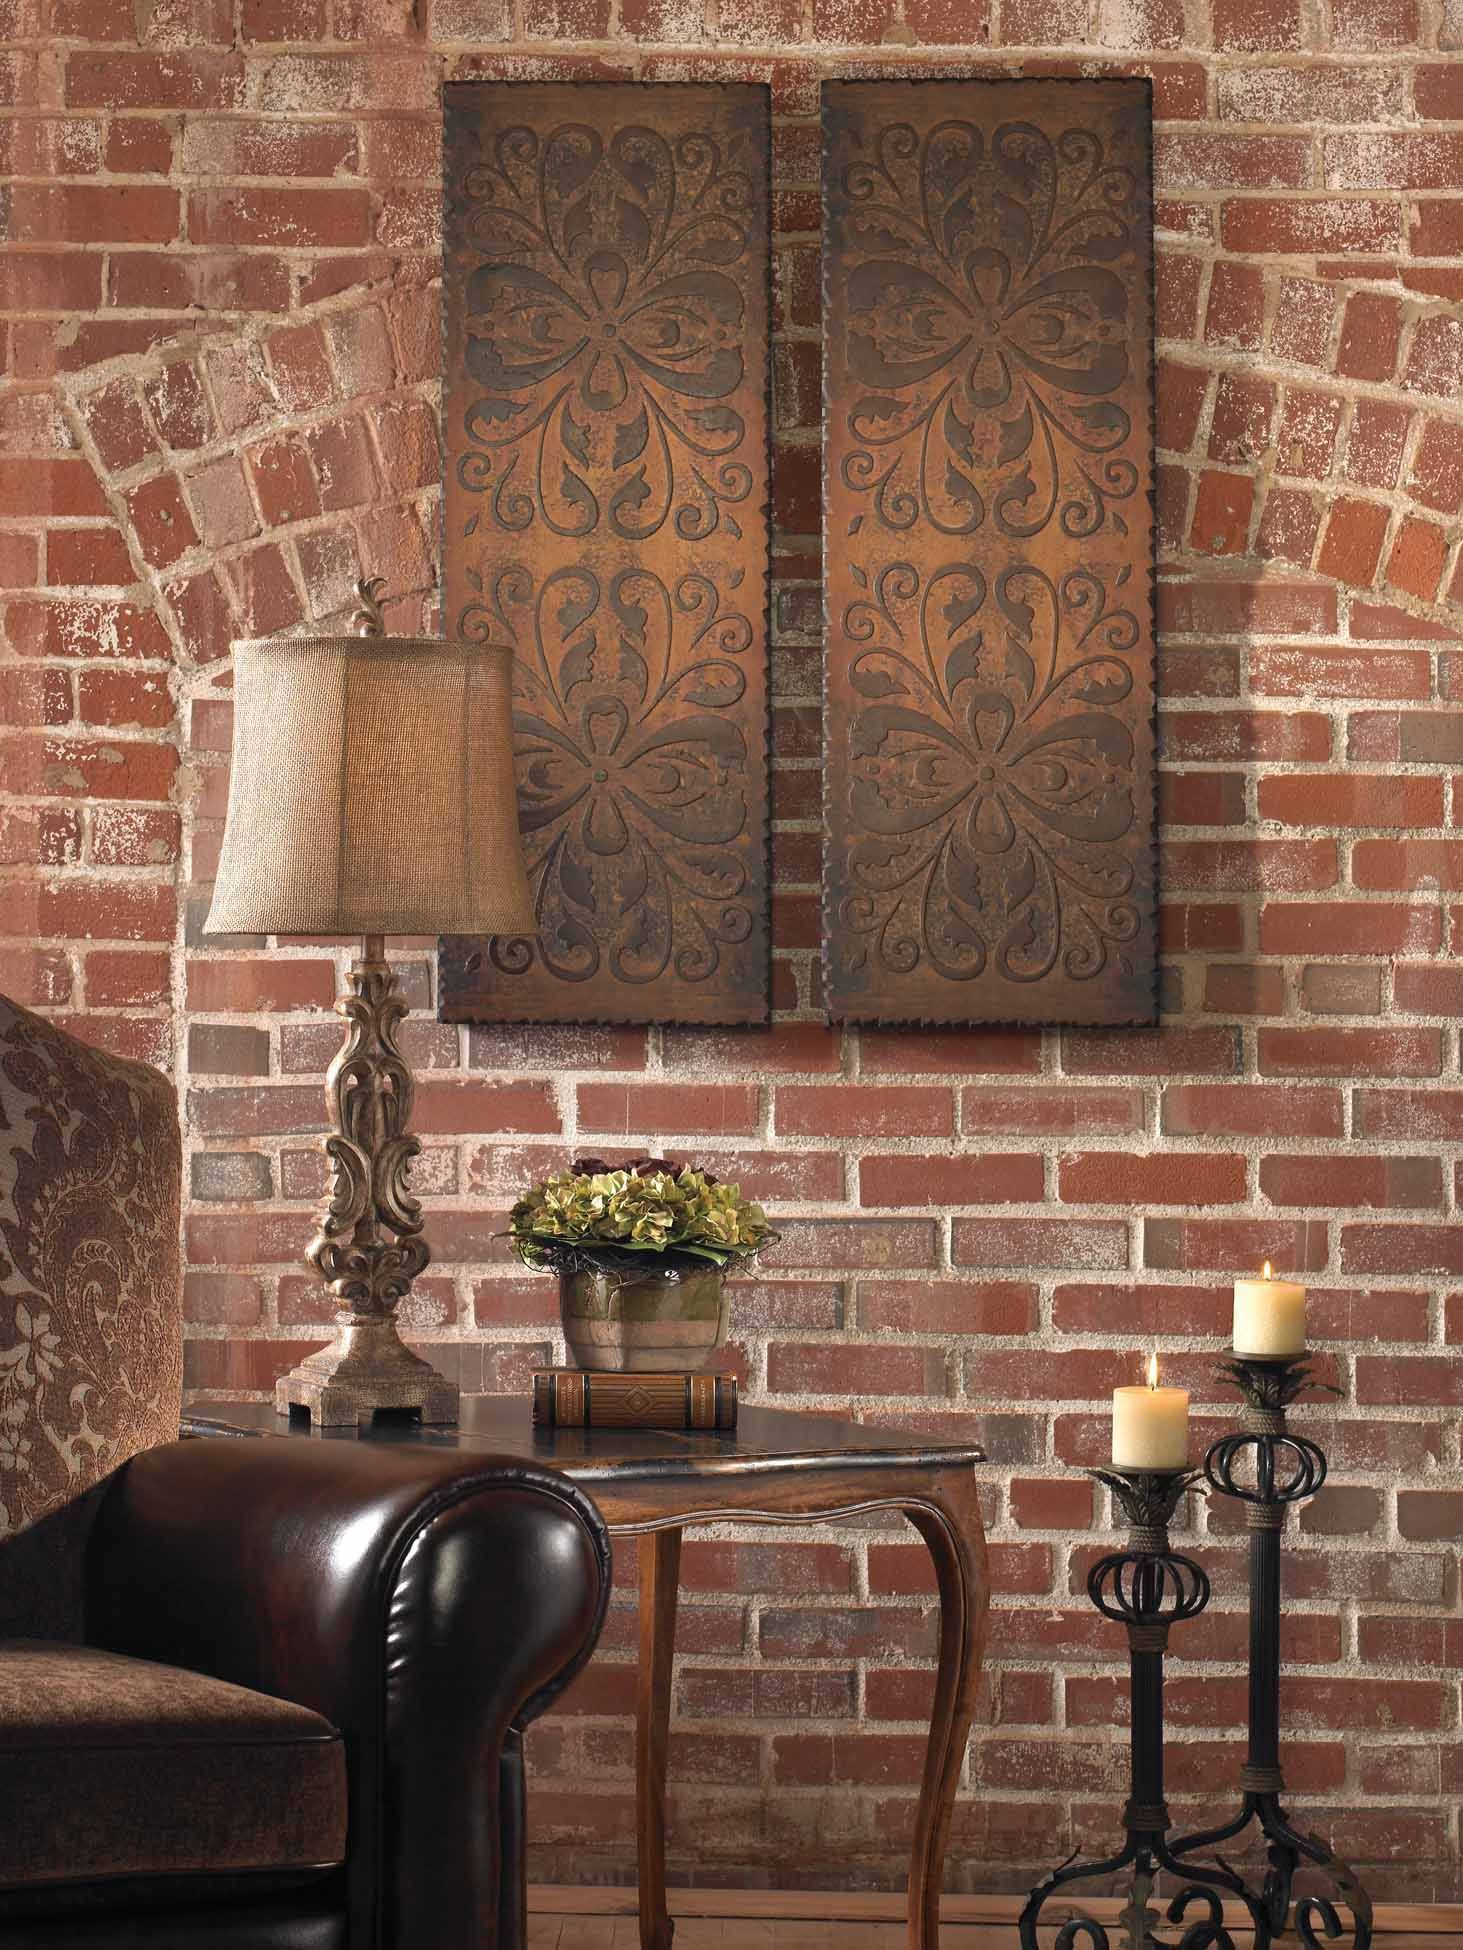 Decorative wall accessories todosobreelamorfo decorative wall accessories uttermost alexia wall panels set 2 13643 uttermost amipublicfo Gallery